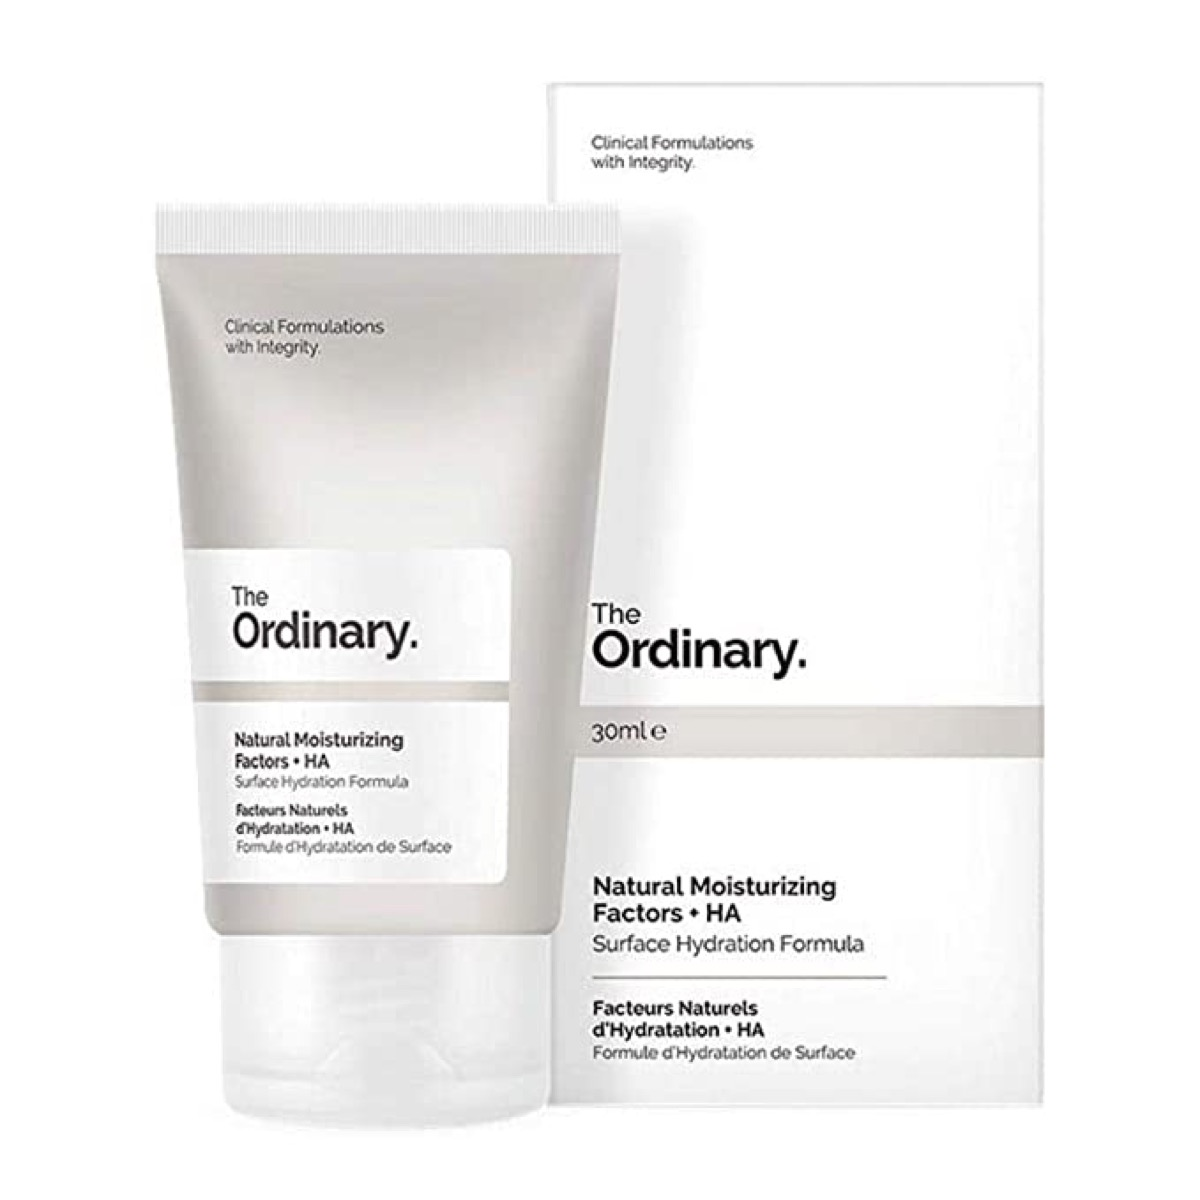 The Ordinary. Moisturizer bottle and box